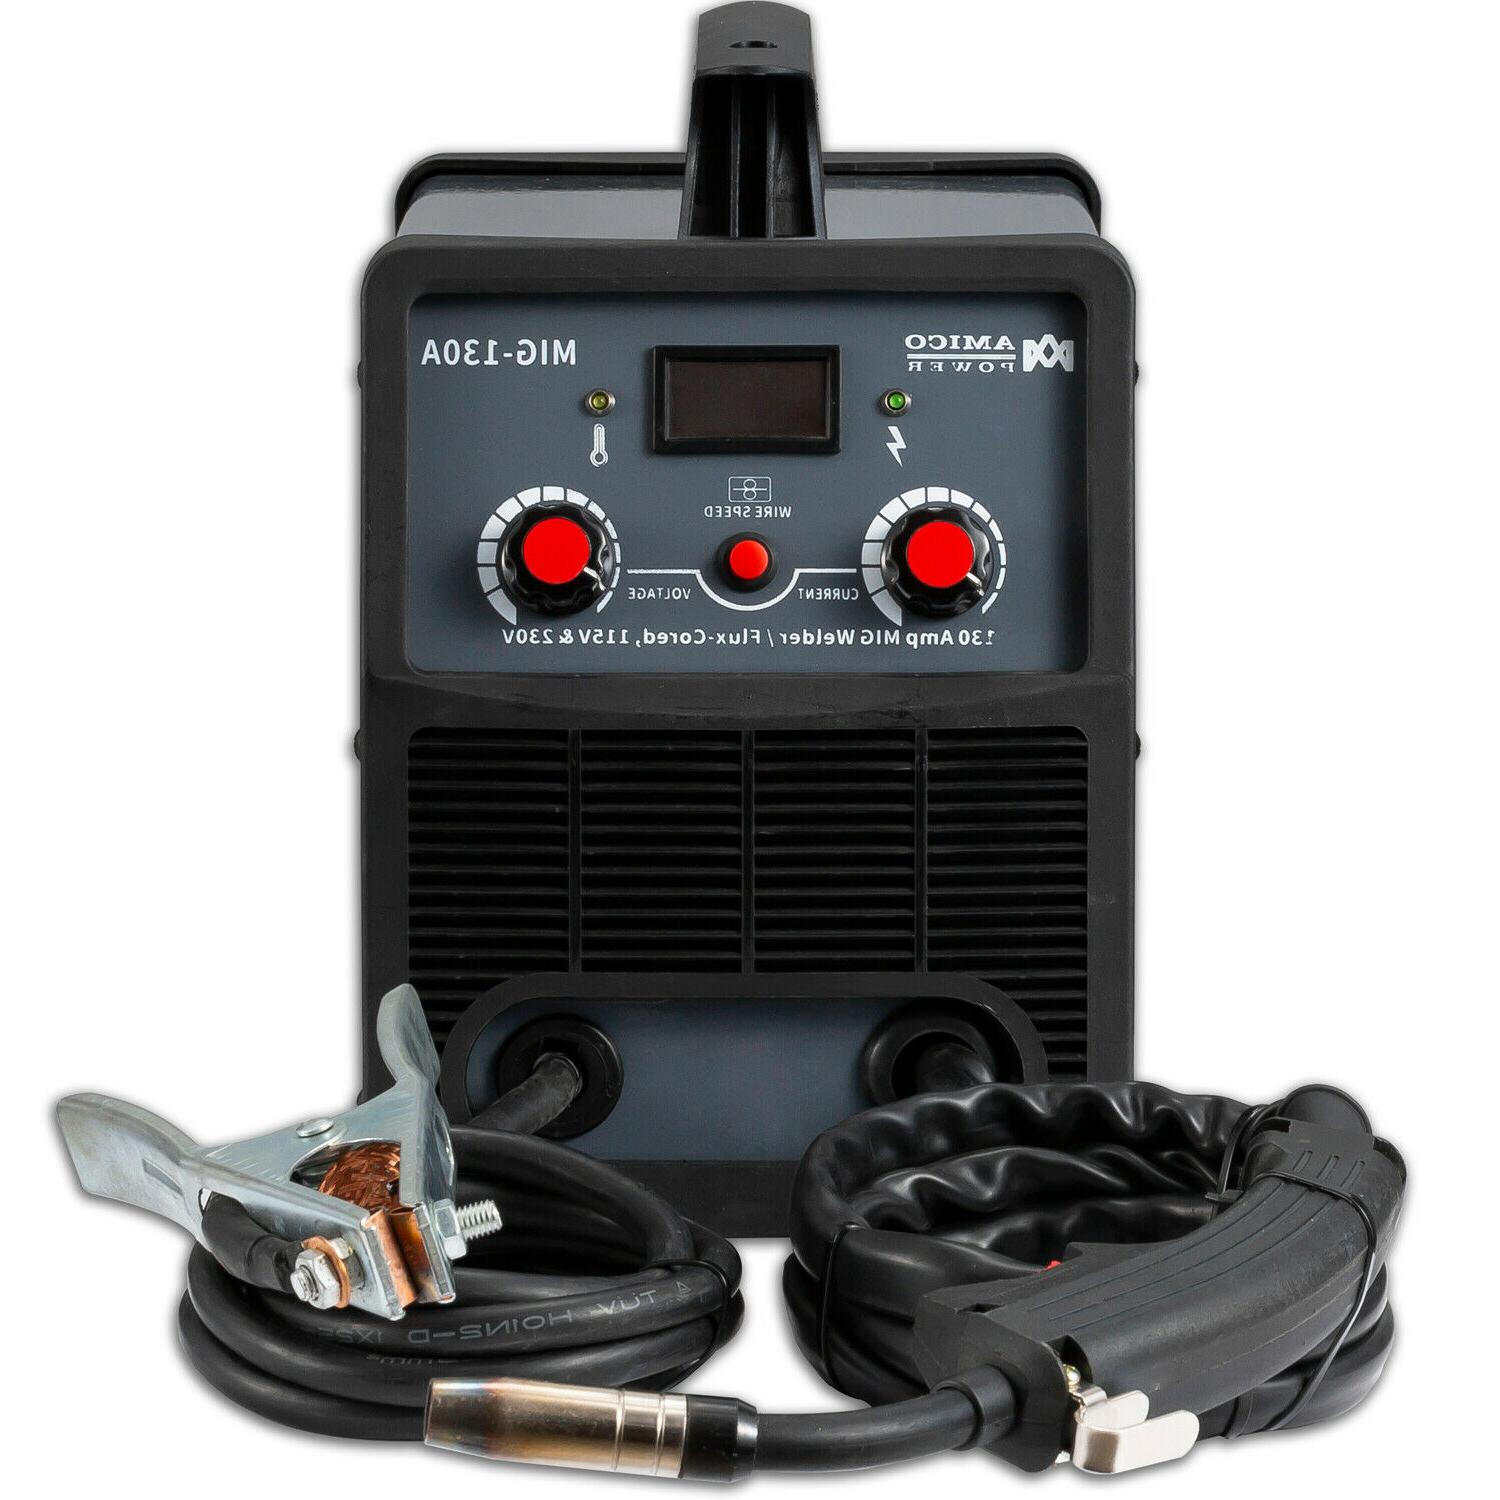 amico mig 130 amp flux core gasless